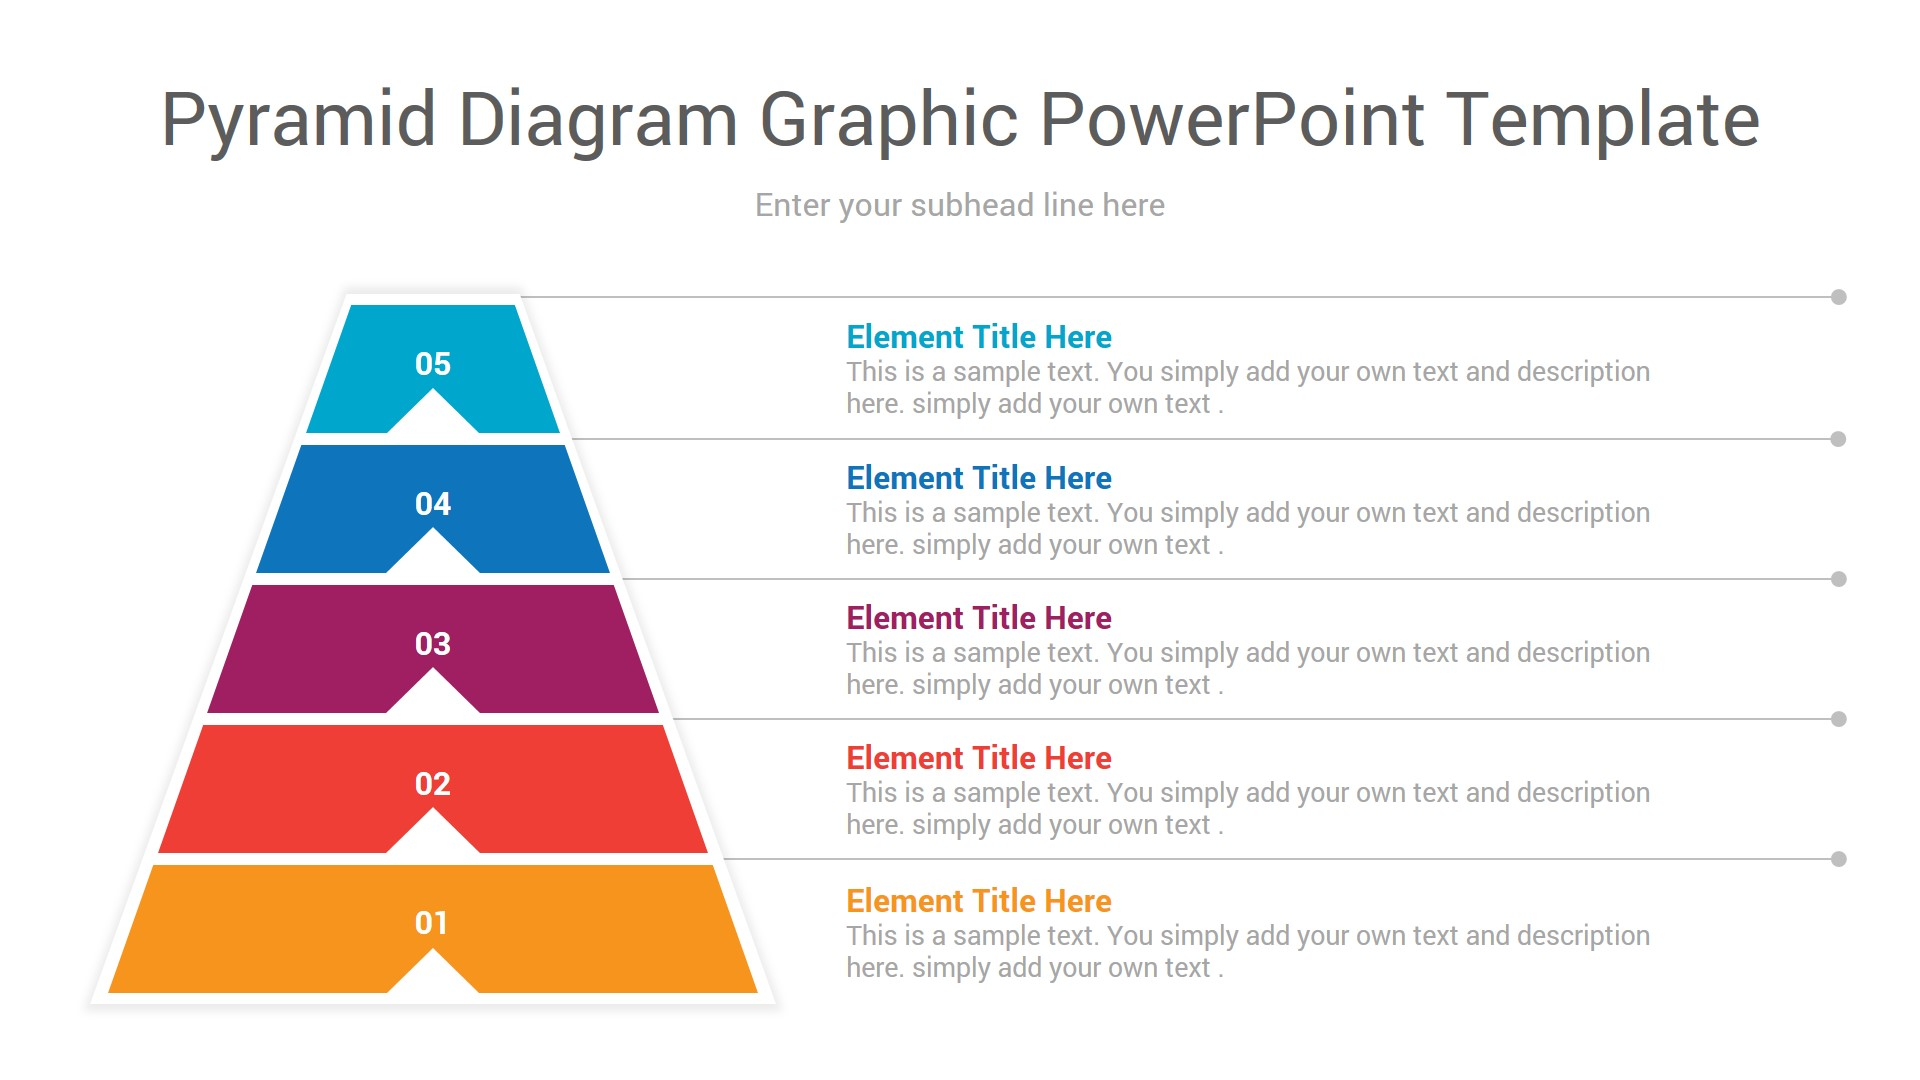 pyramid diagram graphic powerpoint template